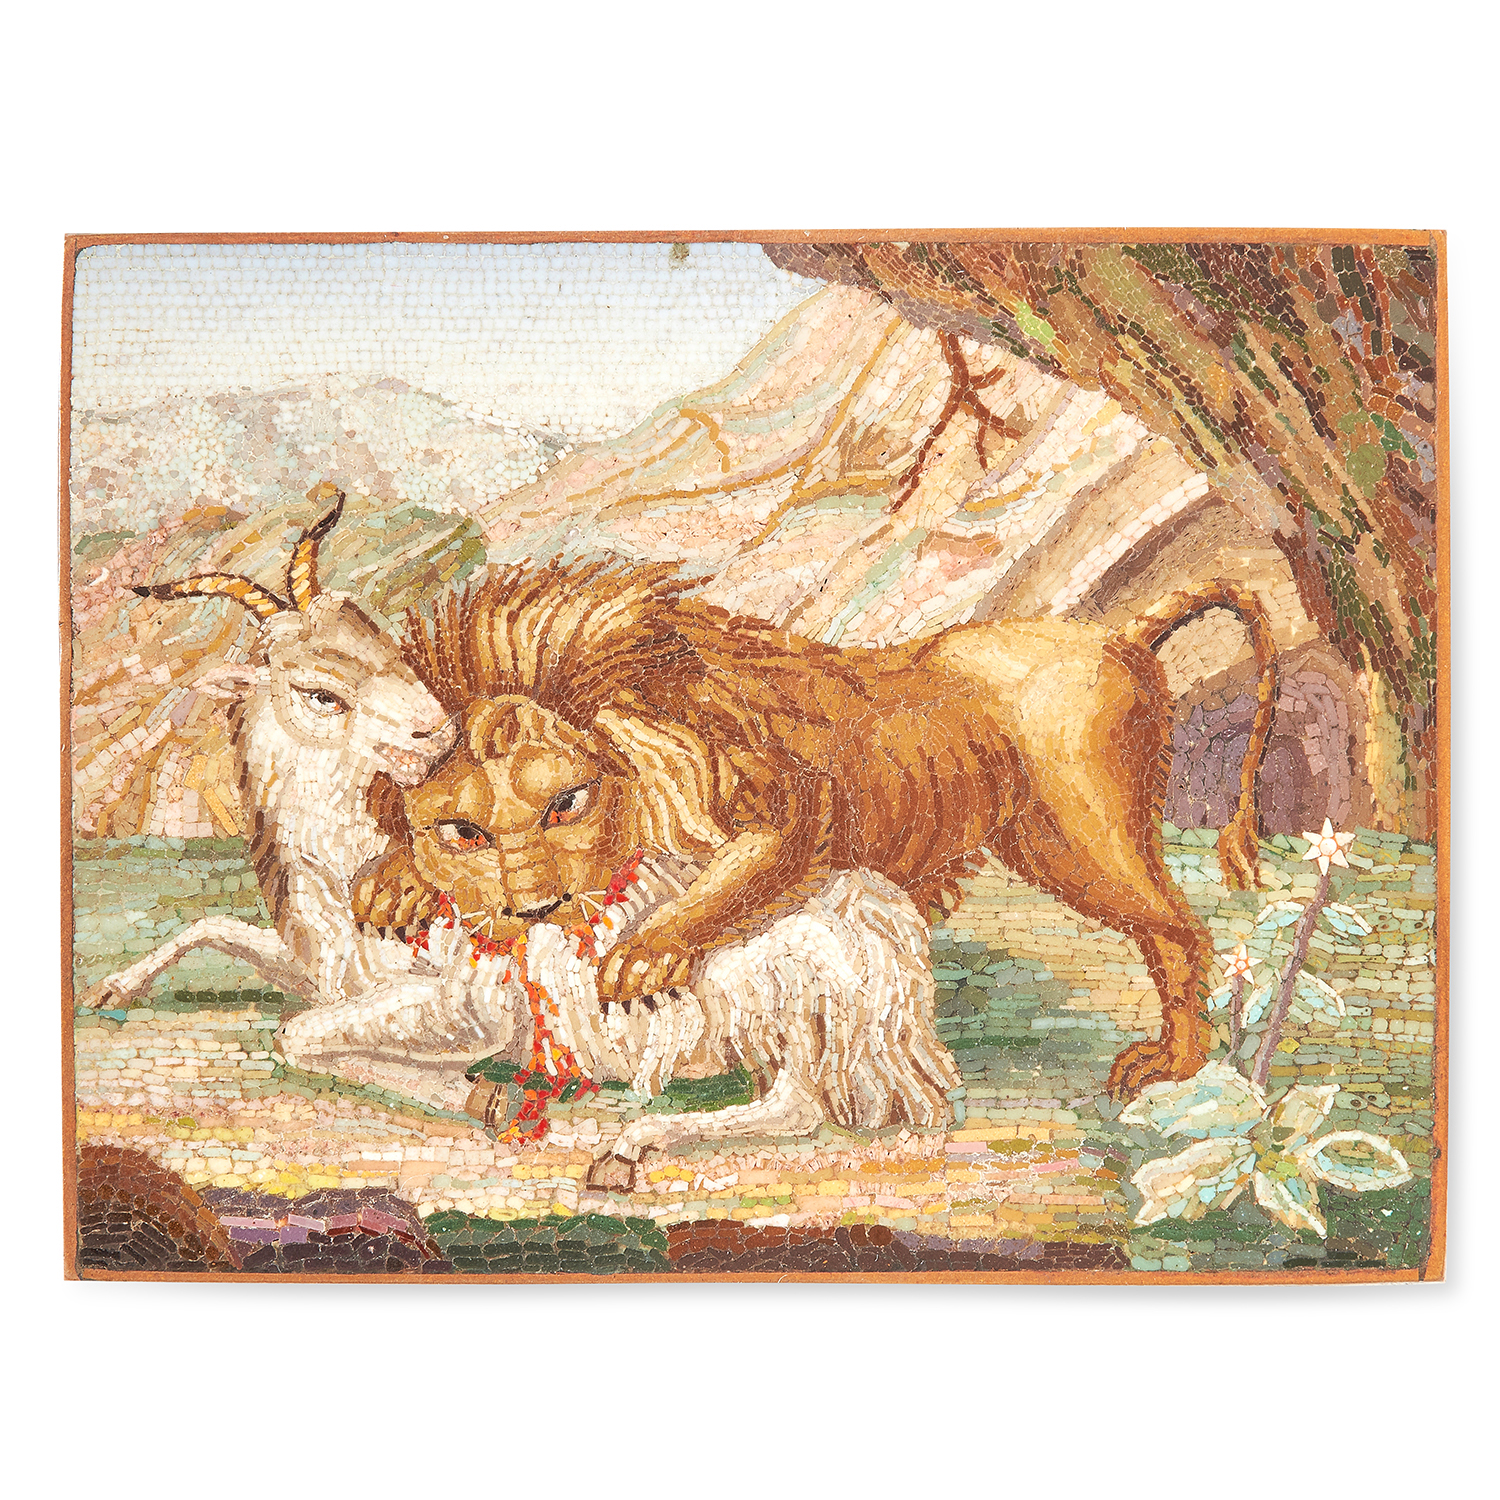 Los 60 - AN ANTIQUE MICROMOASIC PLAQUE, POSSIBLY BY FILIPPO PUGLIESCHI ROME CIRCA 1820 of rectangular form,